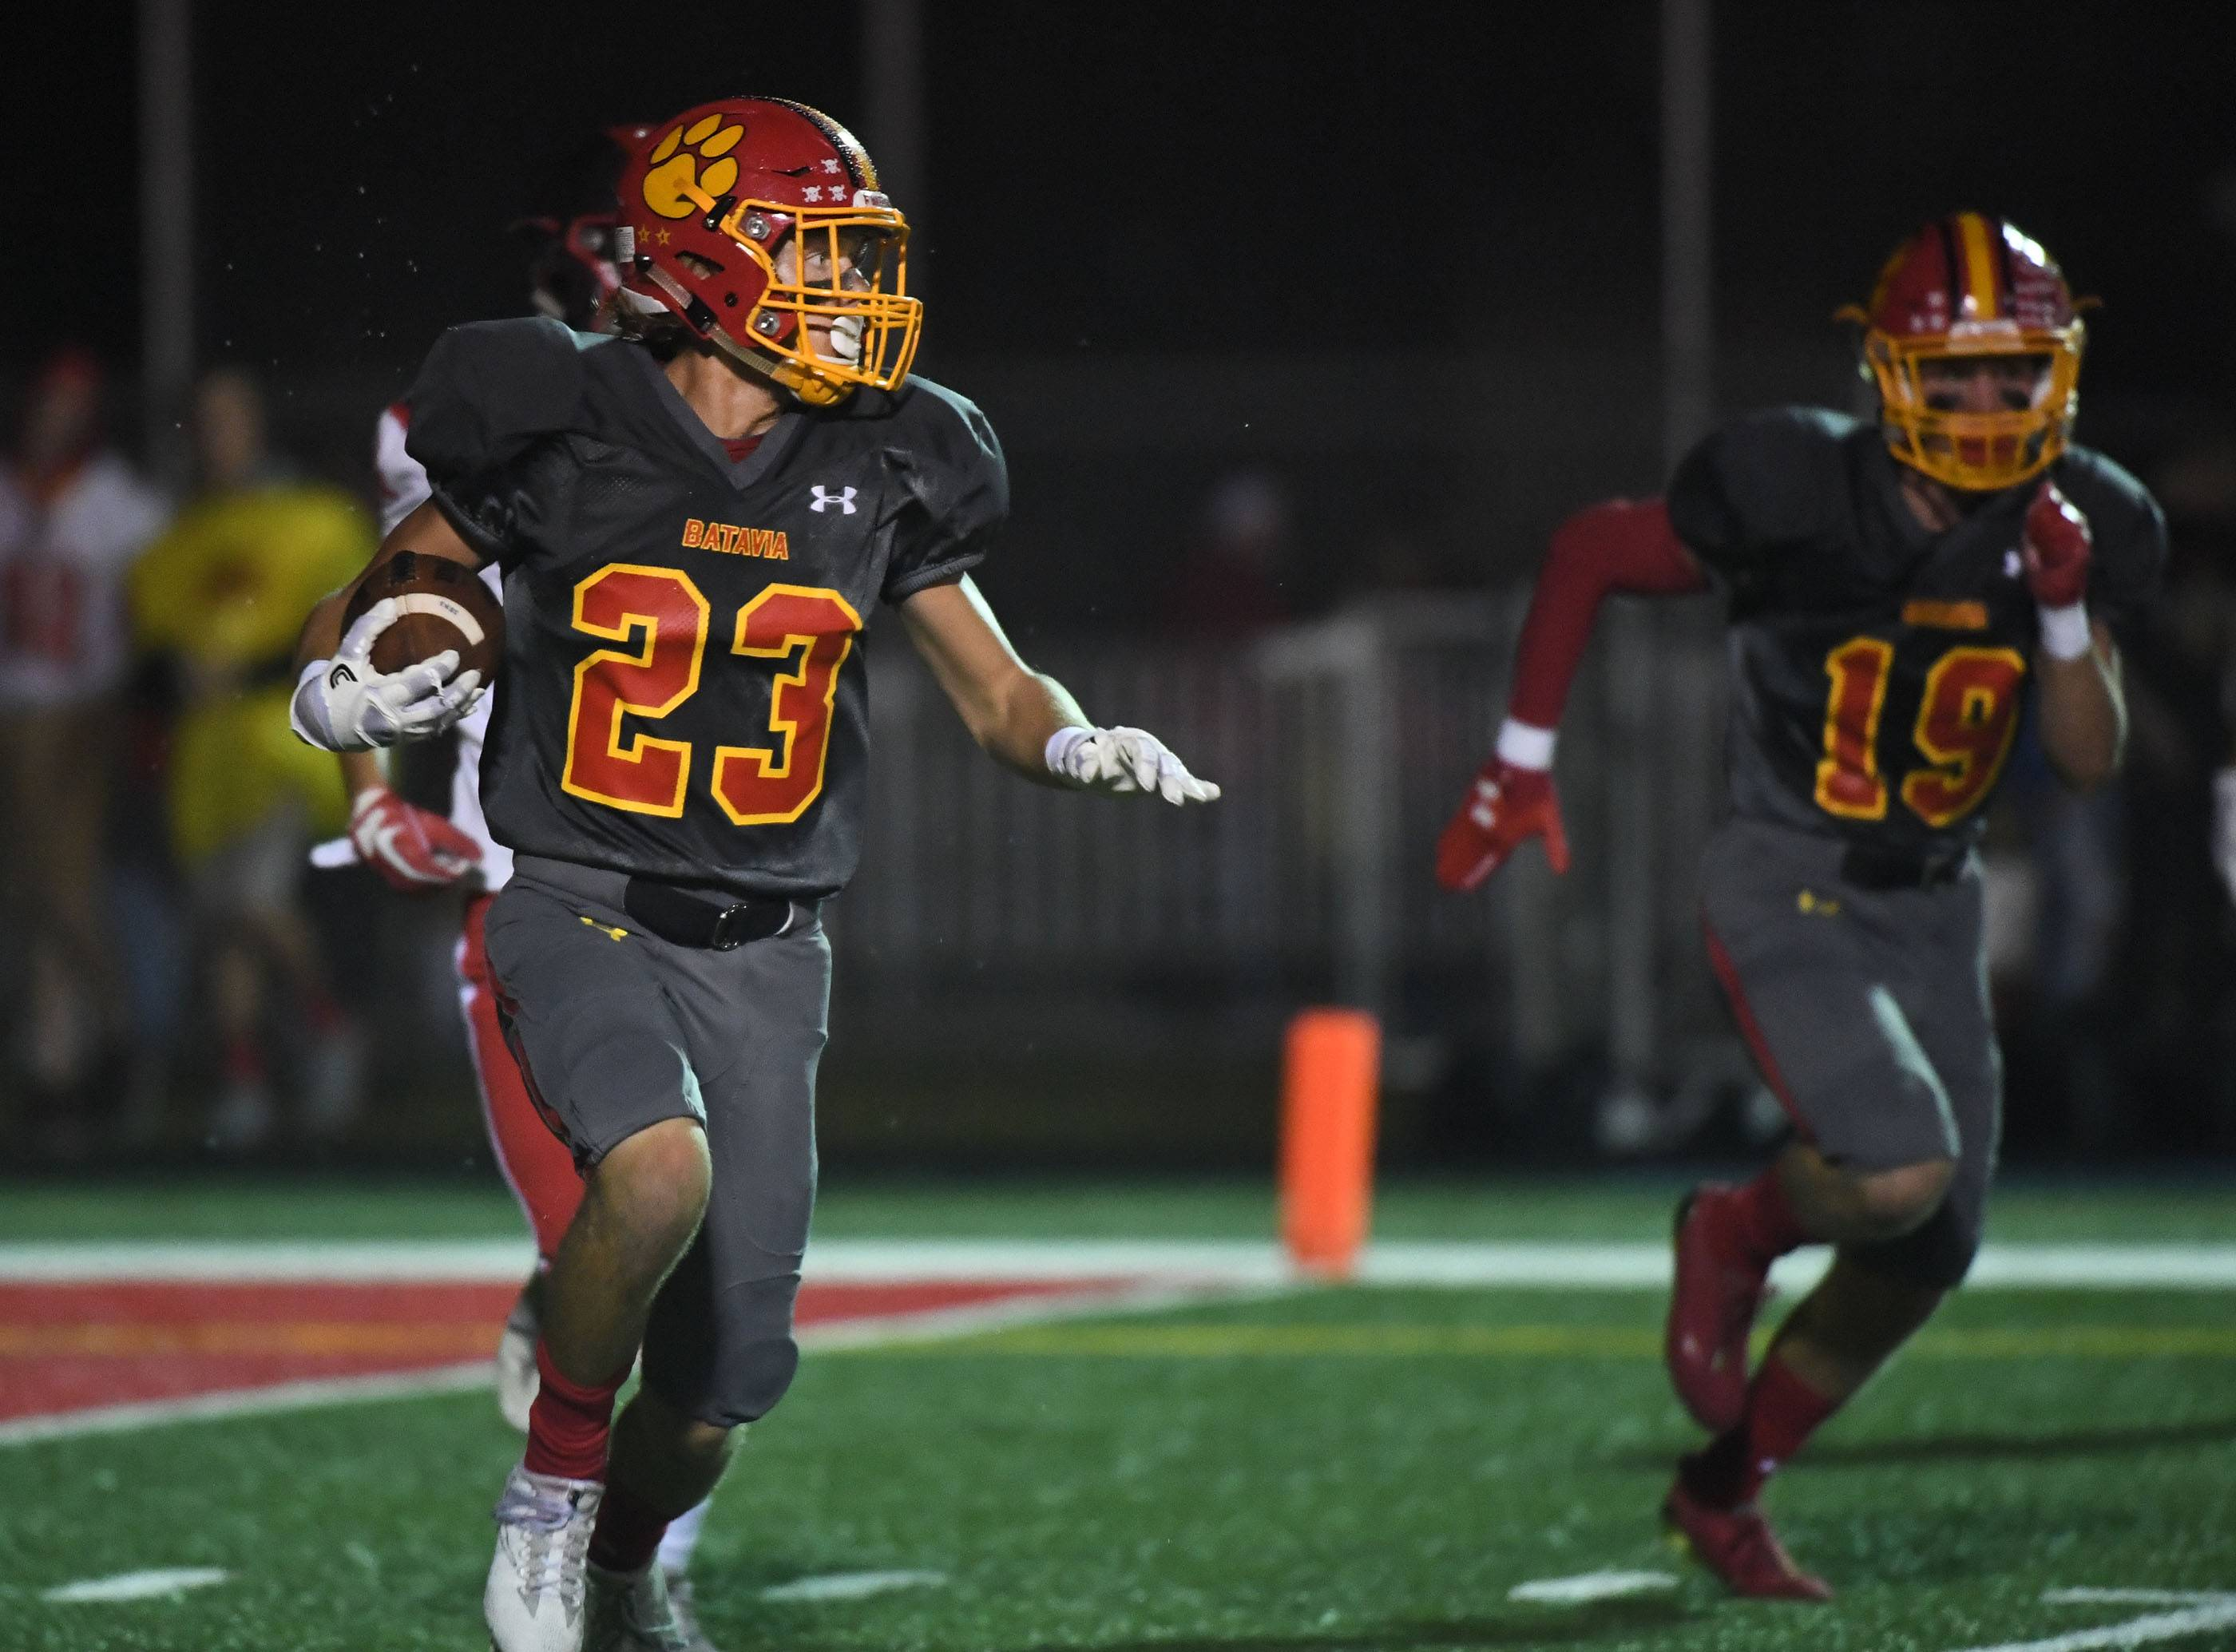 Batavia's Tom Stuttle (23) returns an interception in the end zone late in the first half against South Elgin earlier this season. Stuttle, who leads the Fox Valley area with 6 interceptions this season, will lead the 8-0 Bulldogs into action Friday against 7-1 St. Charles North.